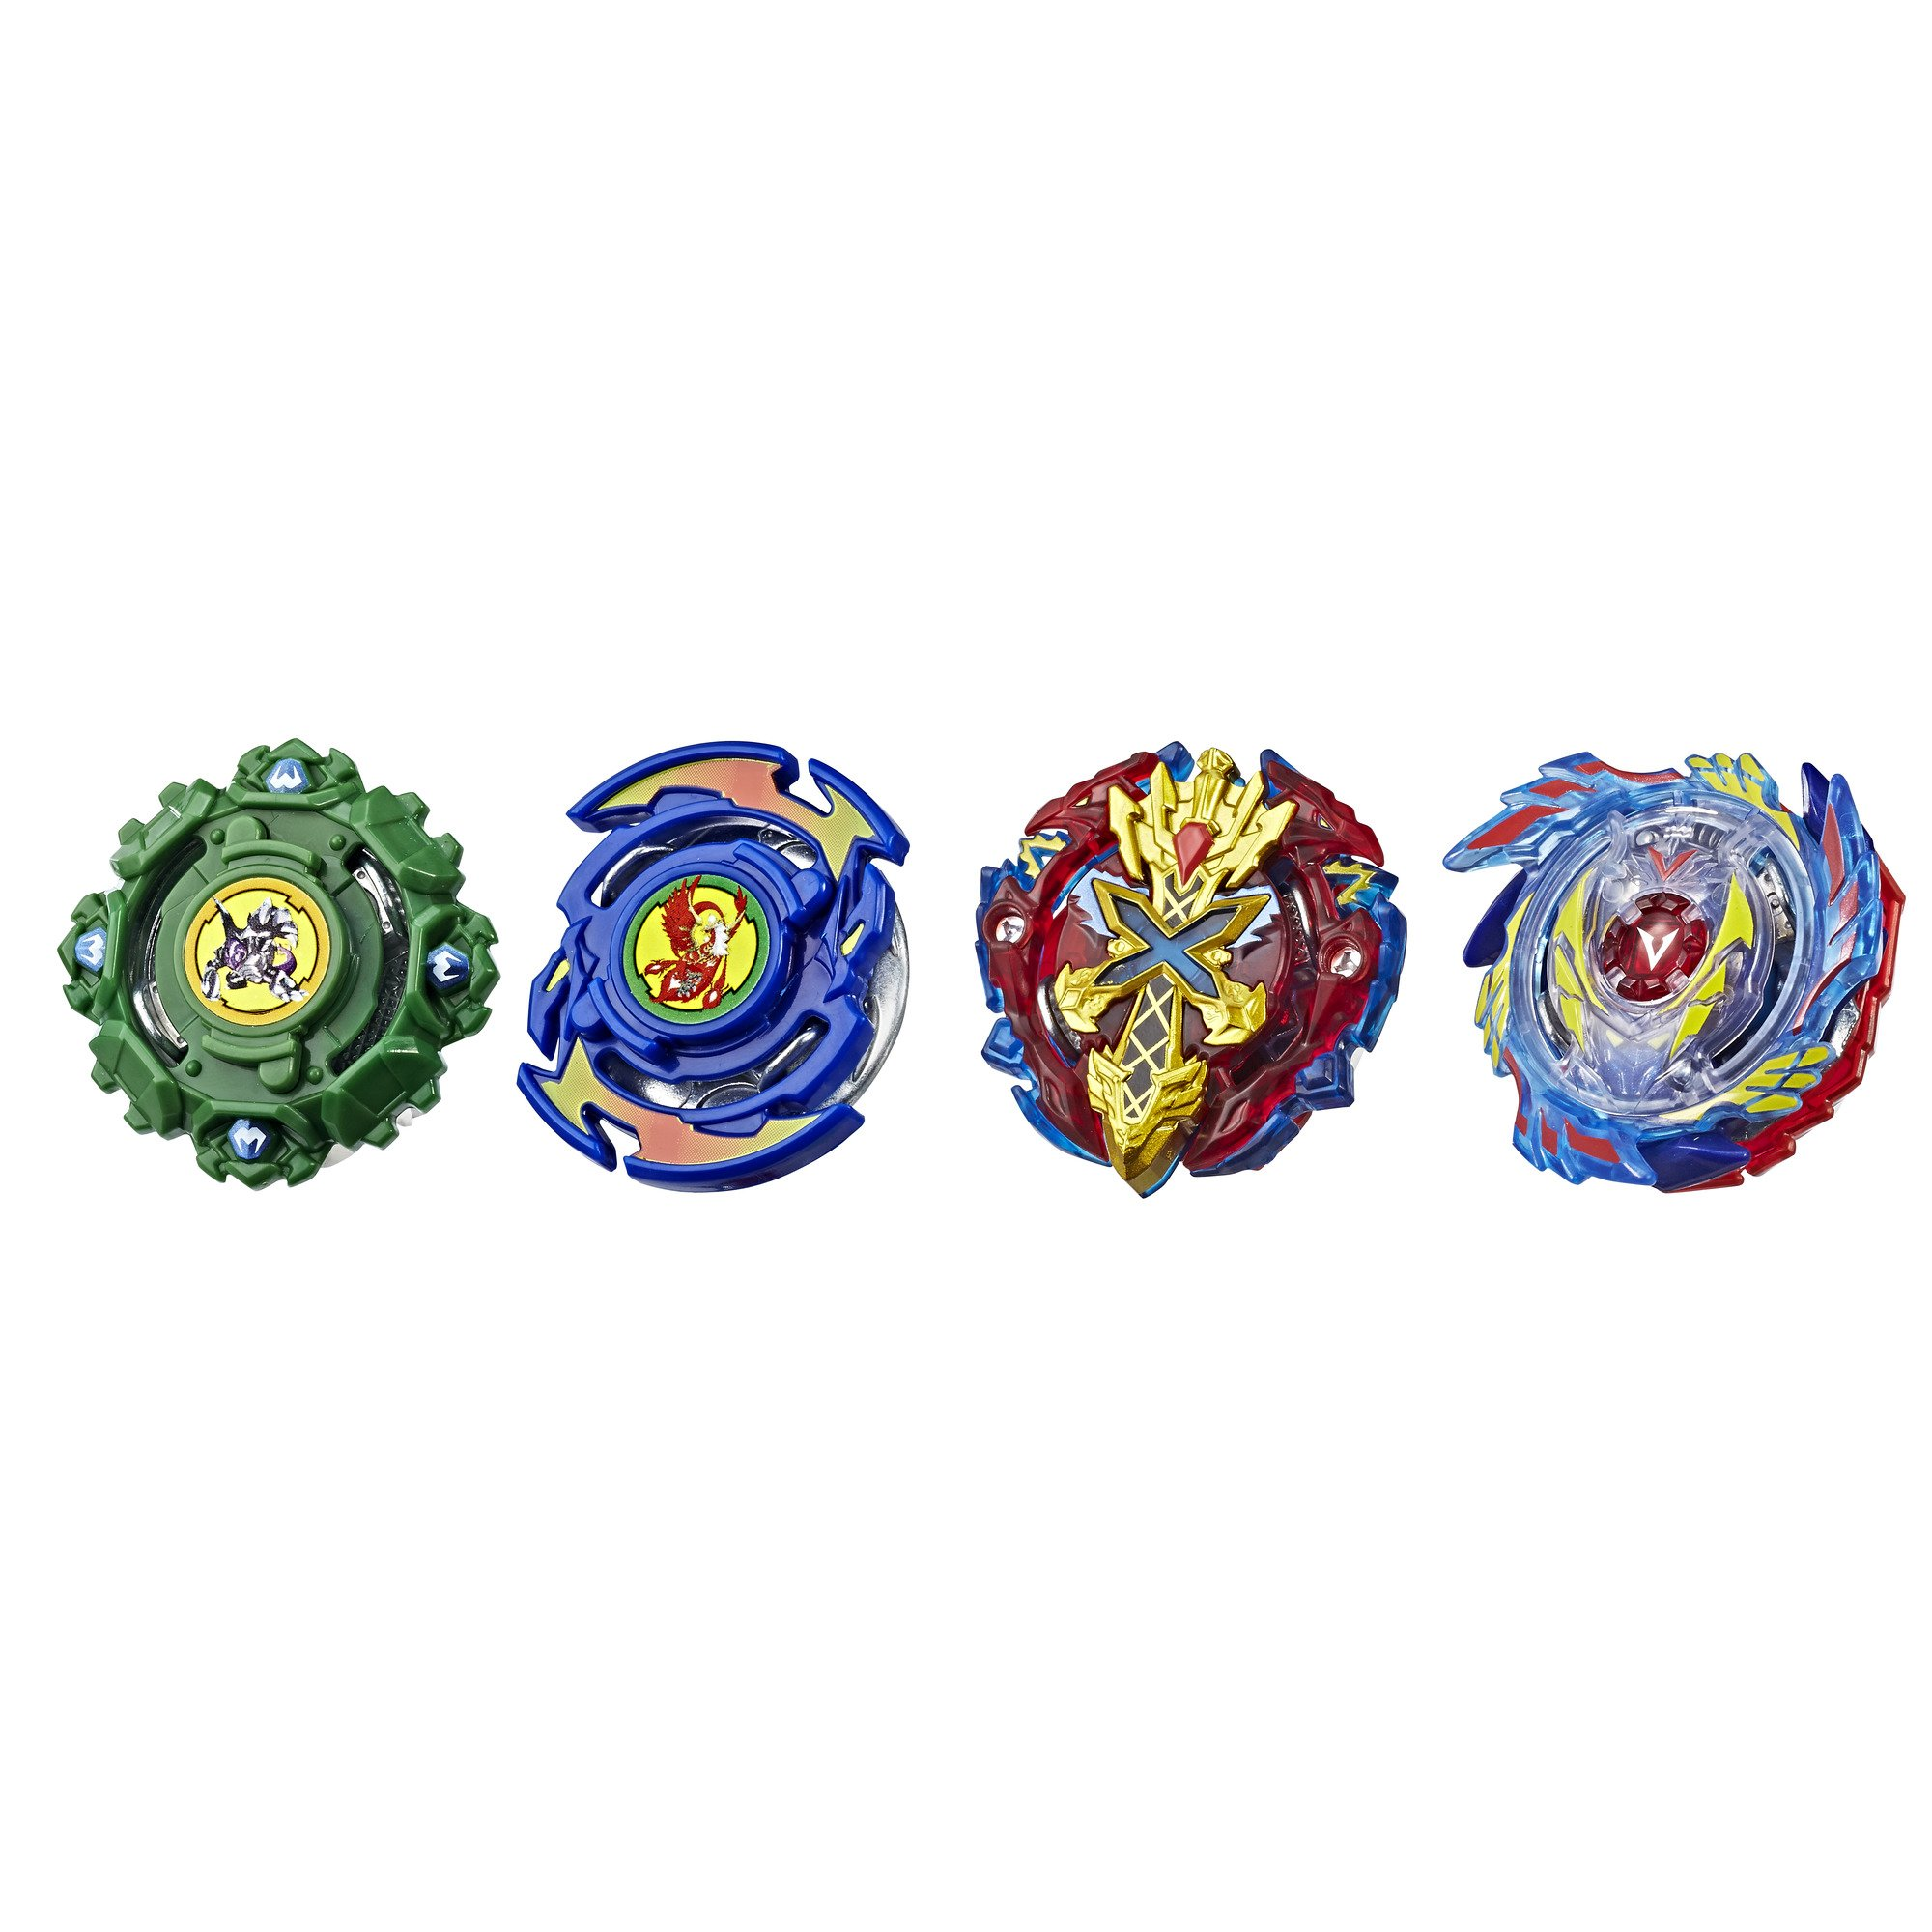 Beyblade Burst Evolution Elite Warrior 4-Pack - 4 Iconic Right-Spin Battling Tops, Age 8+ Toy E2458AC1 (Amazon Exclusive) by BEYBLADE